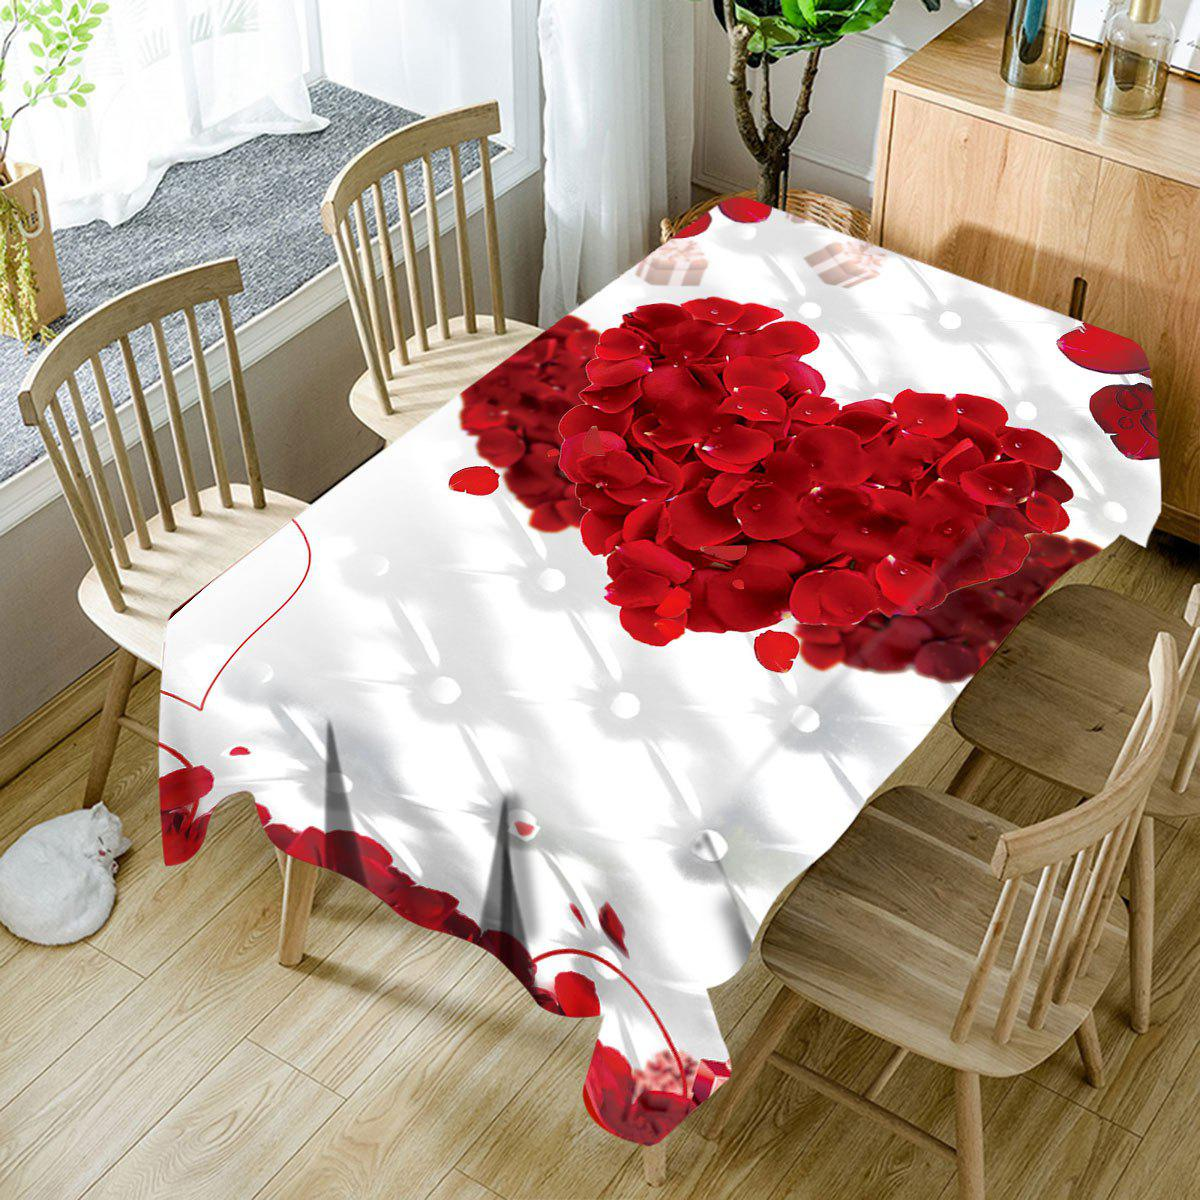 Affordable Valentine's Day Petals Double Hearts Print Waterproof Table Cloth